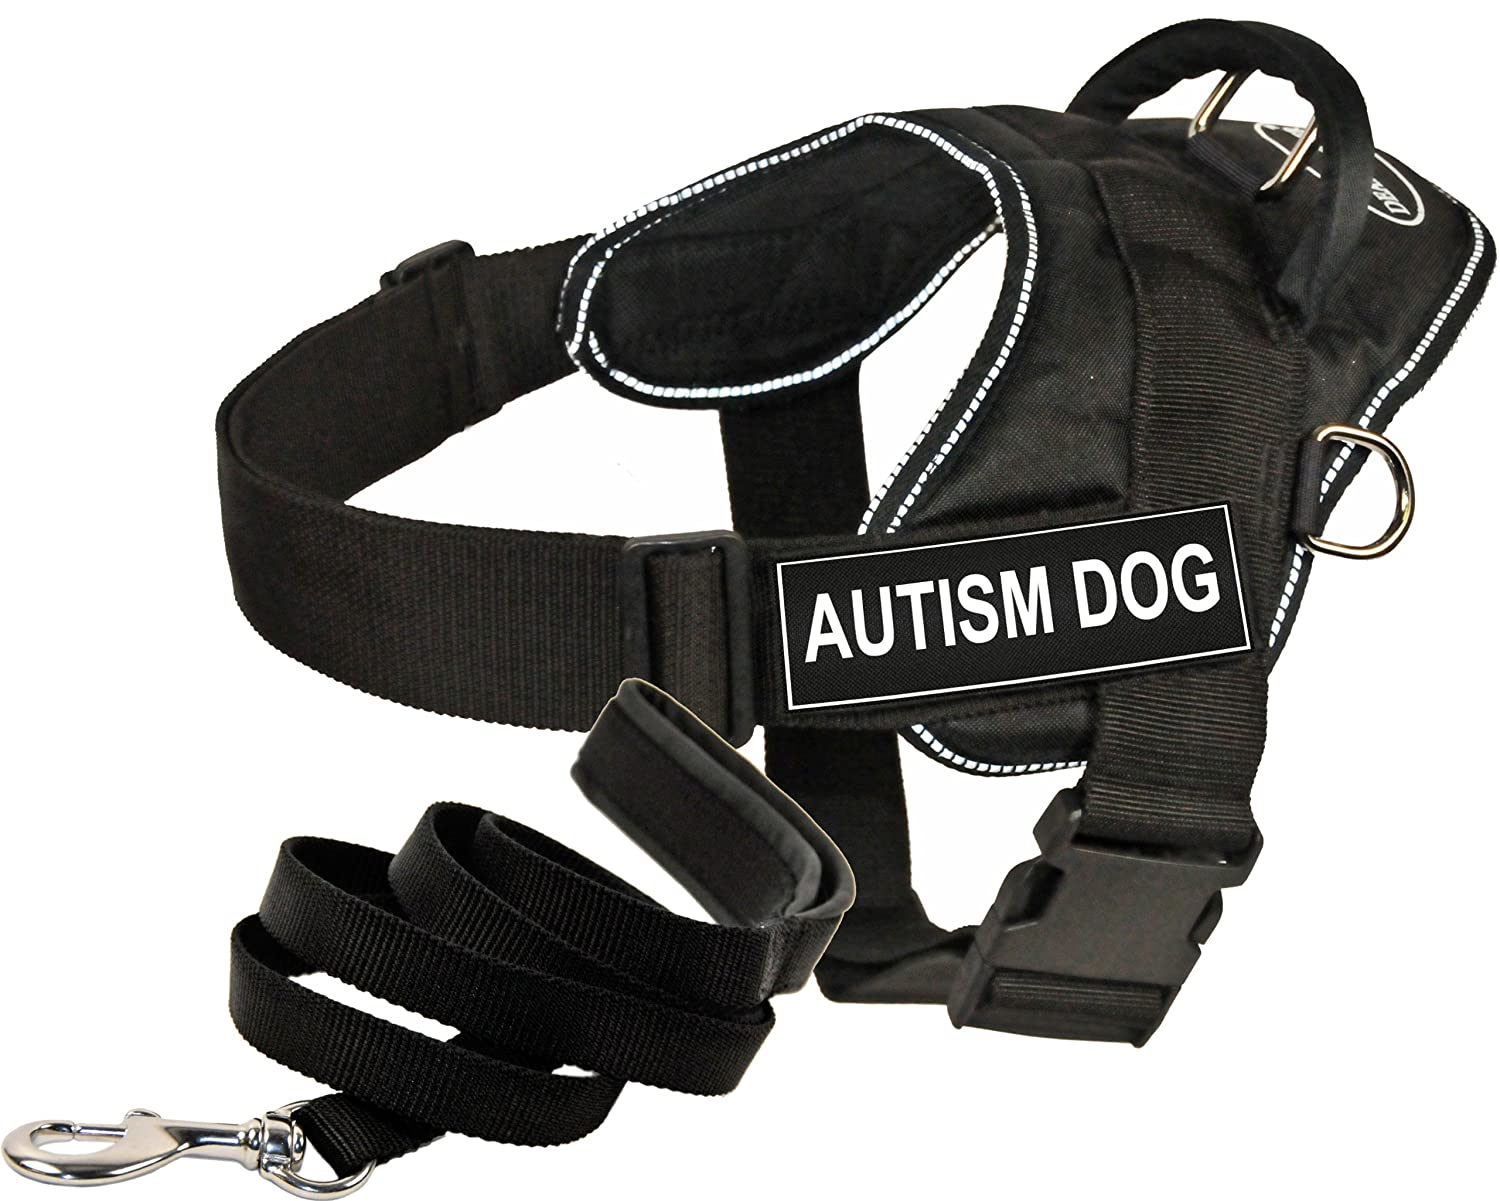 Dean & Tyler DT Fun Works Harness 6-Feet Padded Puppy Leash, Autism Dog, X-Large, Black